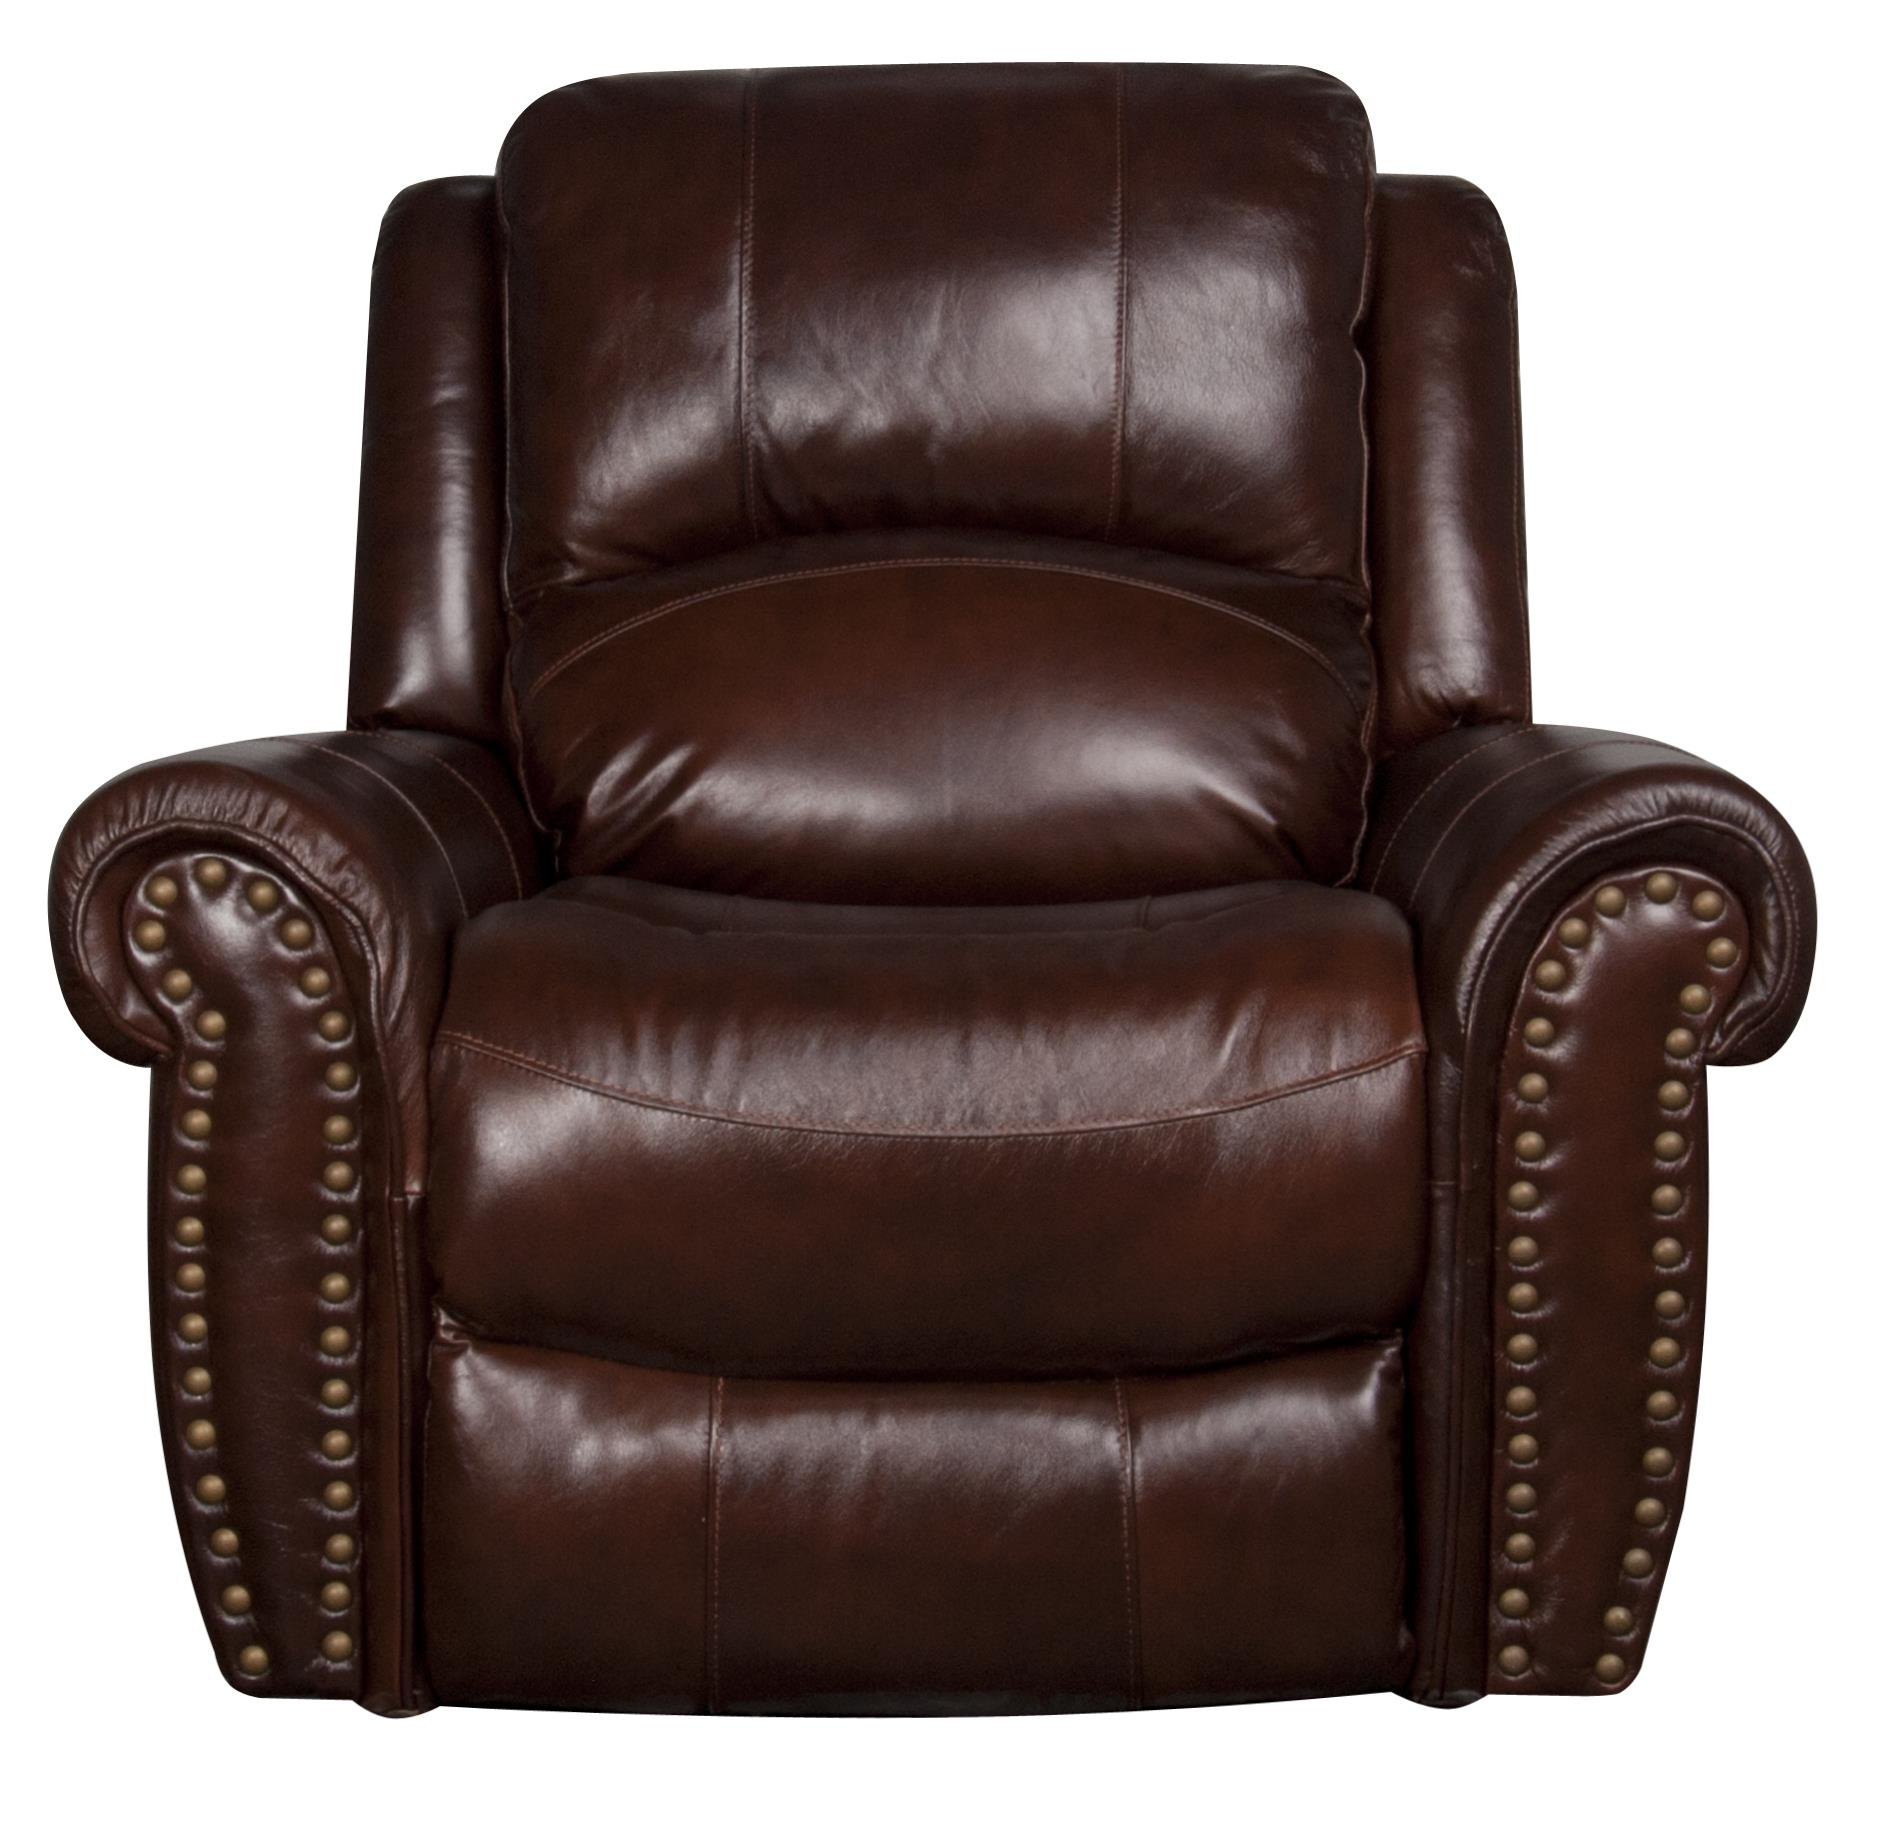 Traditional Leather Match Glider Recliner with Nailhead Trim